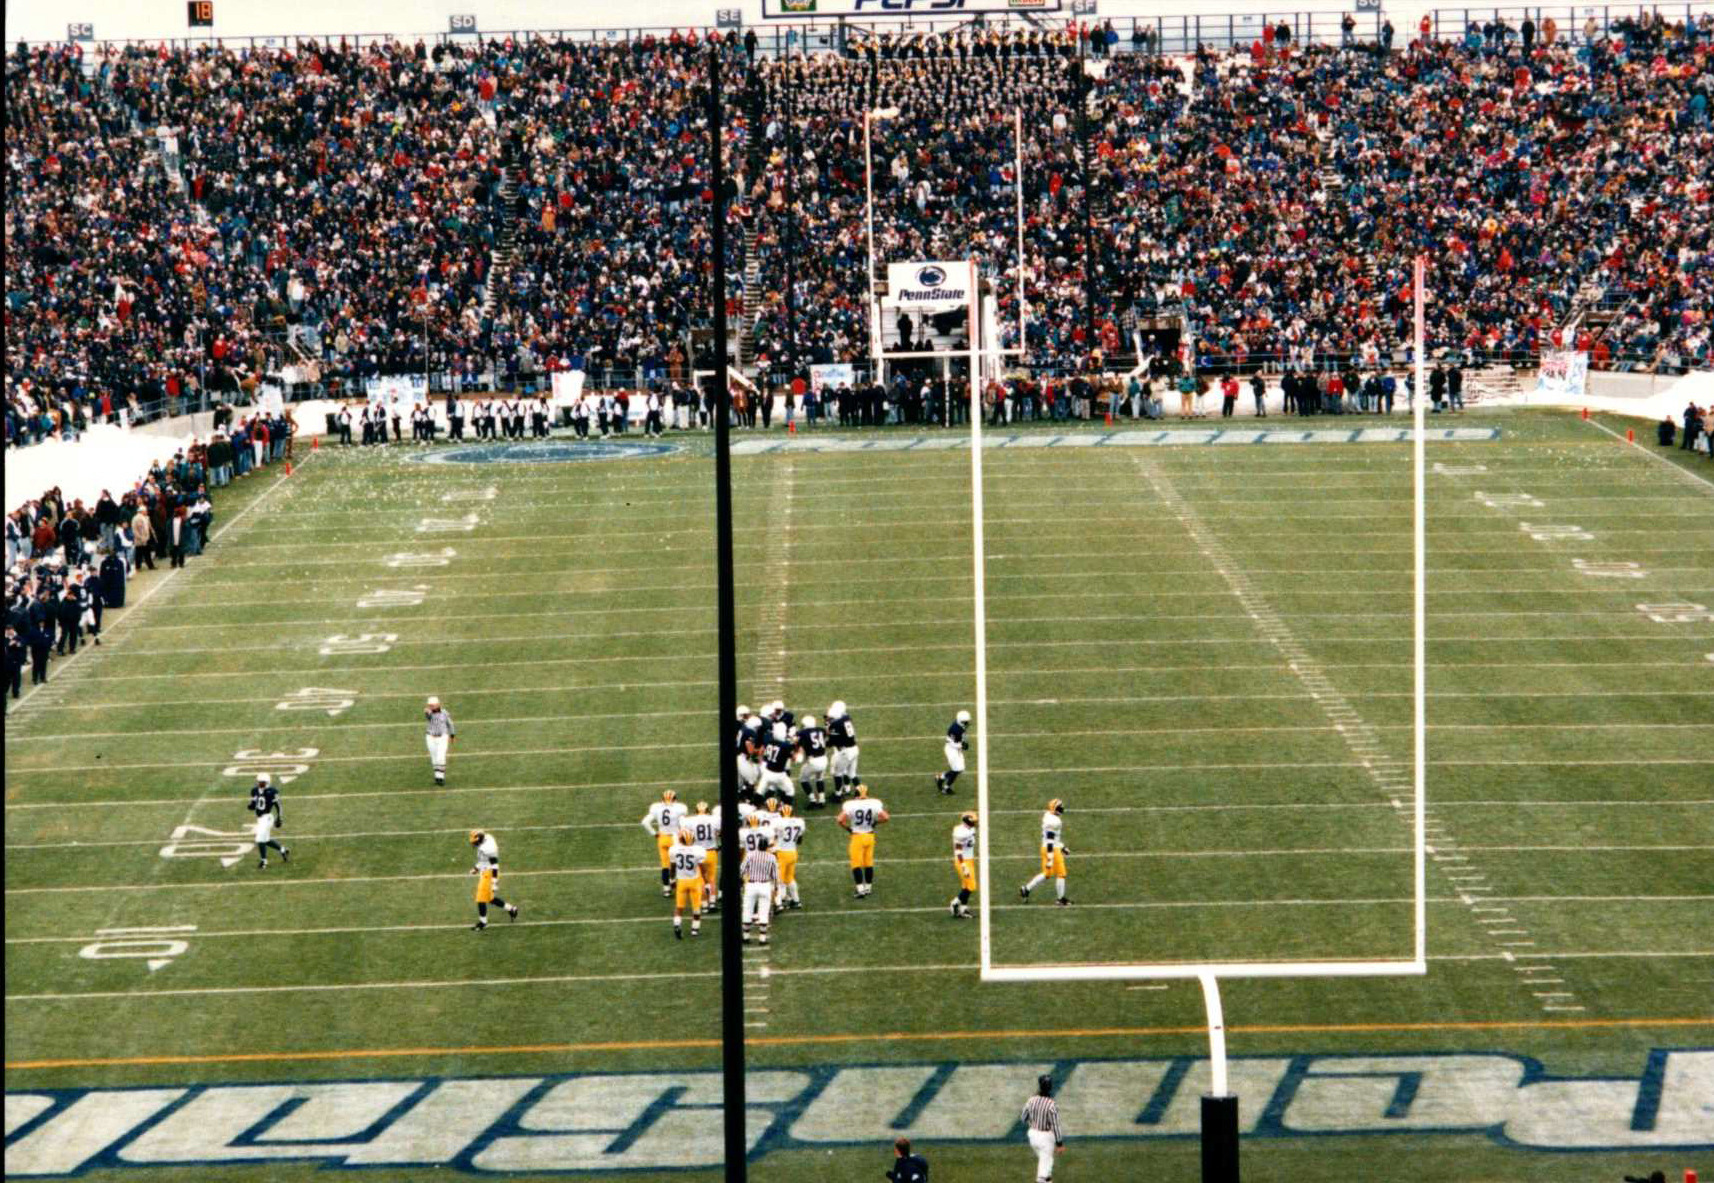 Twenty Years Later Remembering Penn State Vs Michigan In 1995 Penn State University Athletics